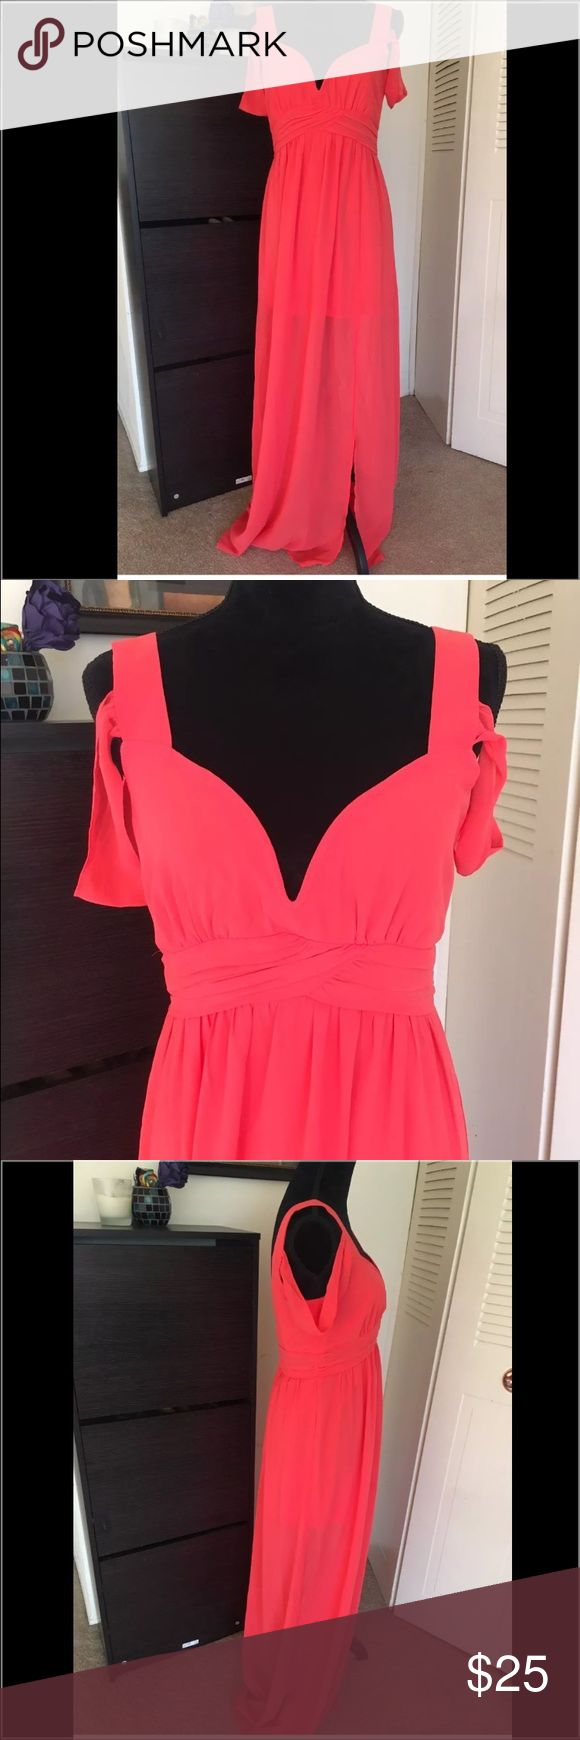 NWT Windsor long coral dress size large This is a new with tags long coral dress by Windsor. It's a beautiful dress. Light material. Perfect for the season. And it's size large. This dress retails in stores for $49.90. WINDSOR Dresses Maxi